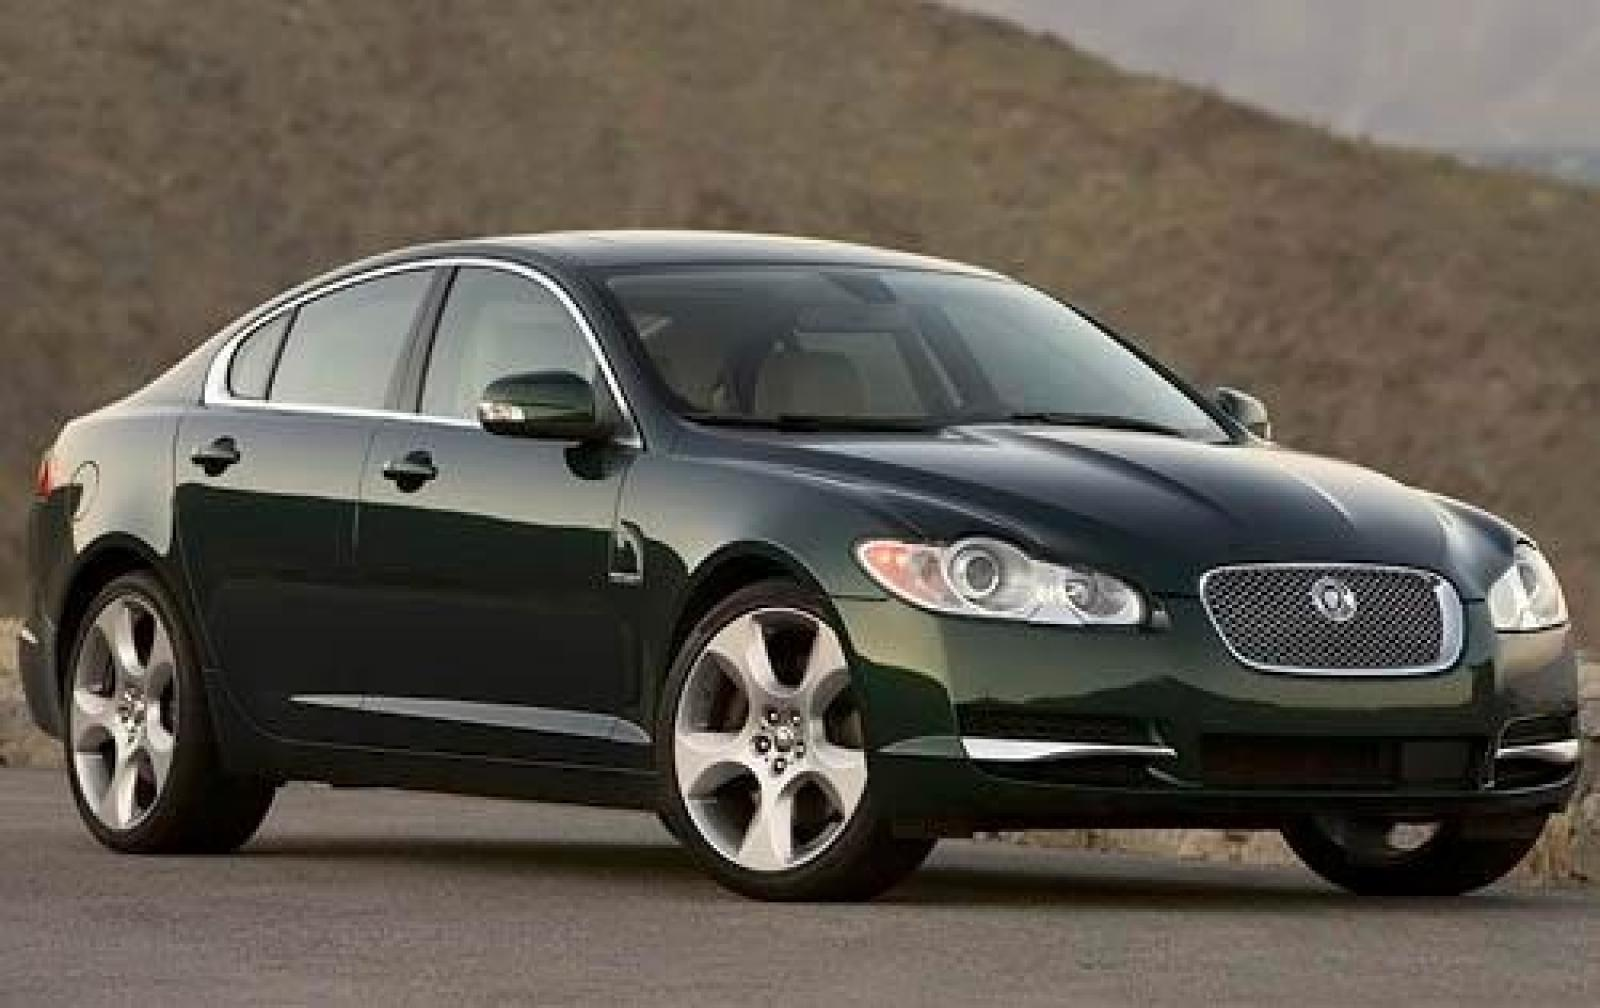 2010 jaguar xf information and photos zombiedrive. Black Bedroom Furniture Sets. Home Design Ideas